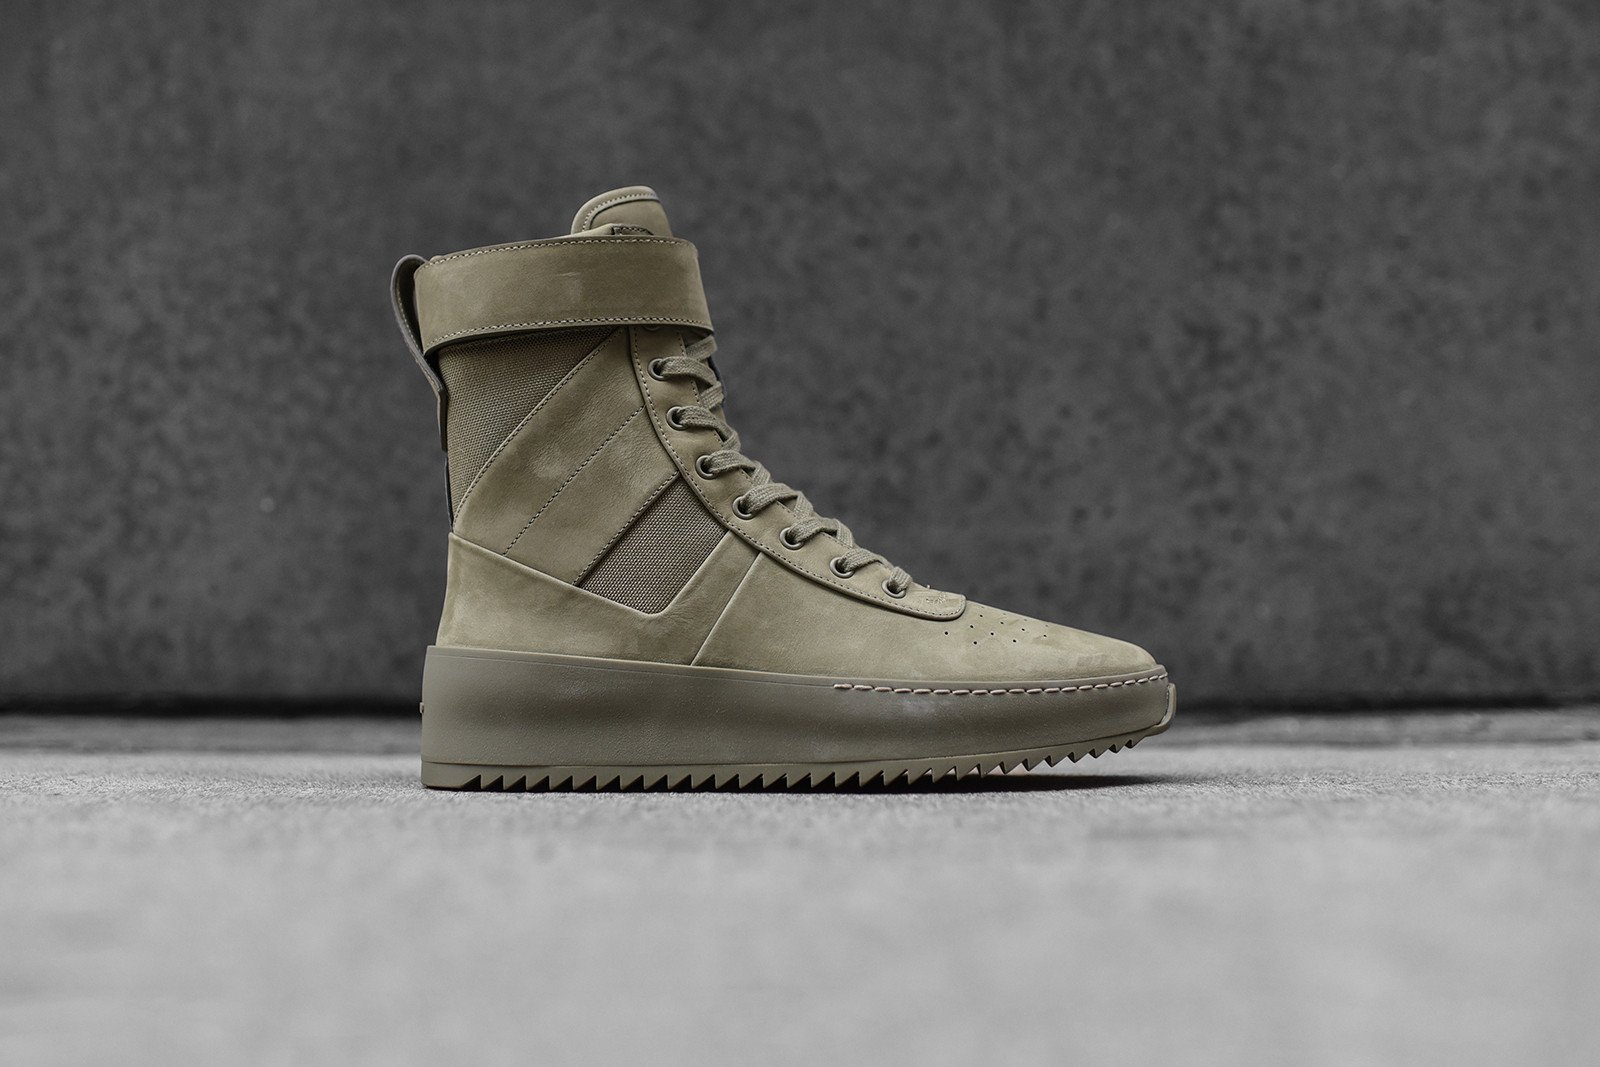 quality design ca4e9 fdcc6 Fear Of God Military Sneaker   Grailed